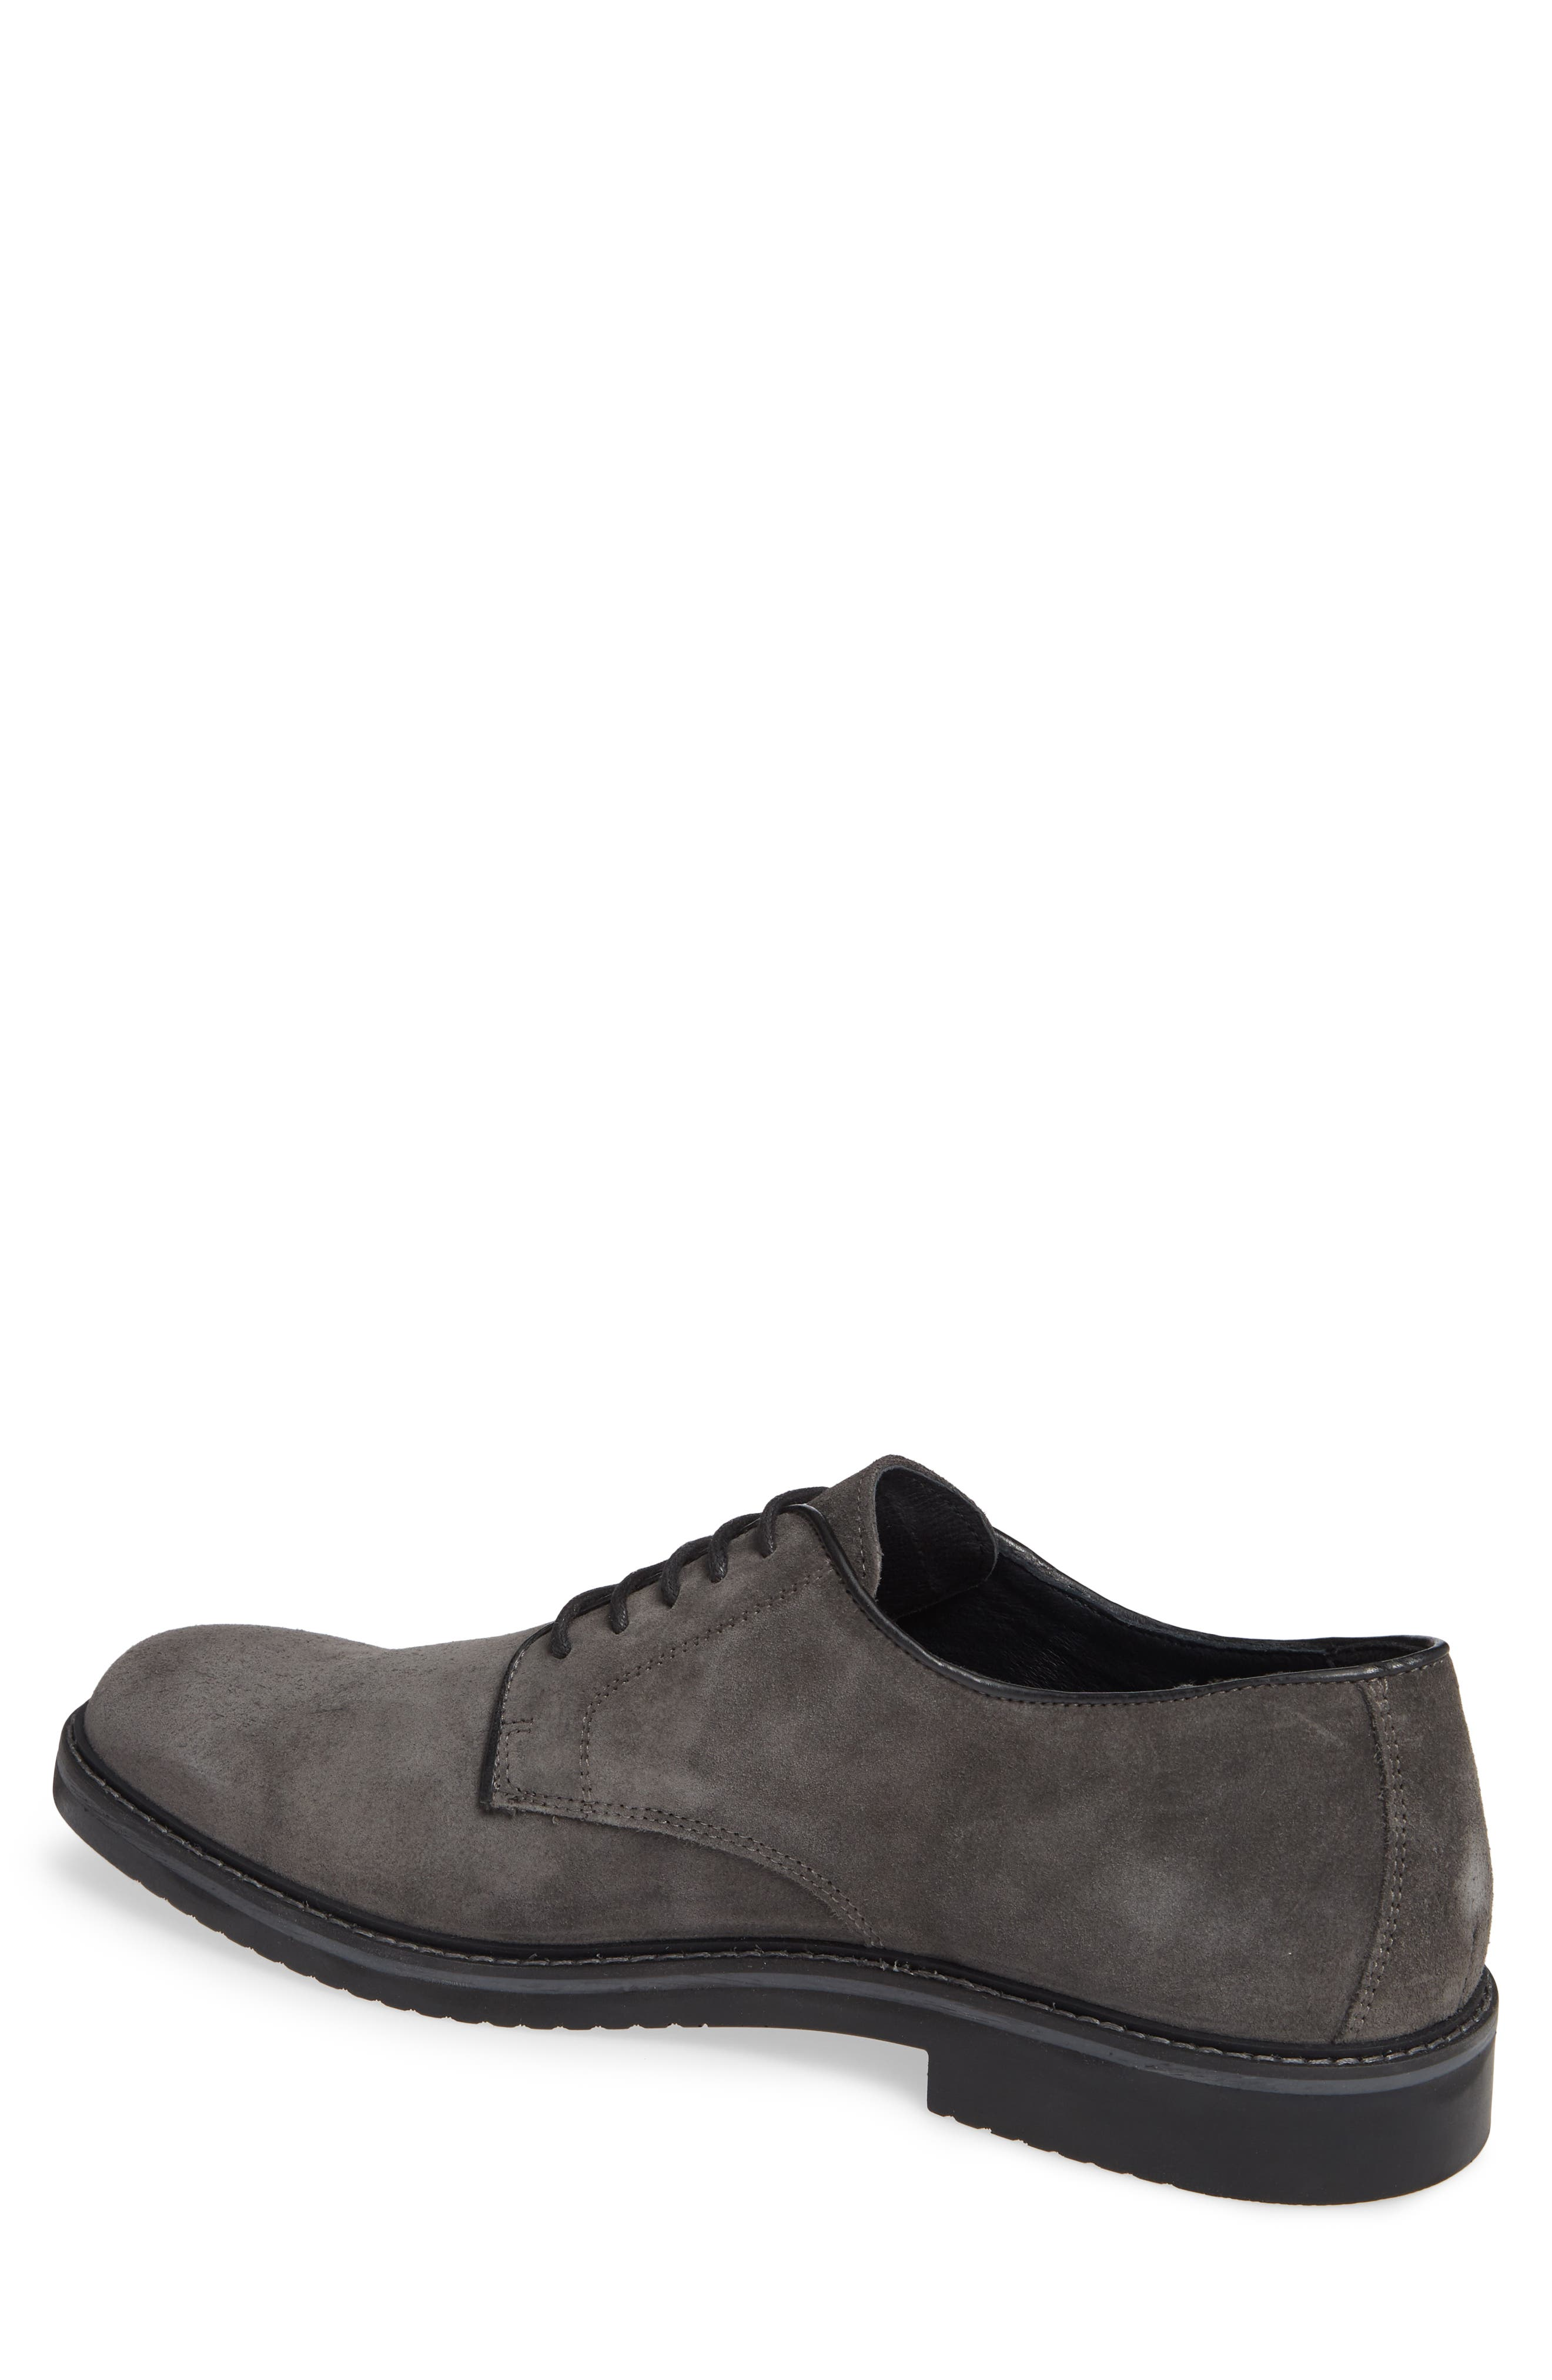 Cardiff Plain Toe Derby,                             Alternate thumbnail 2, color,                             CHARCOAL SUEDE